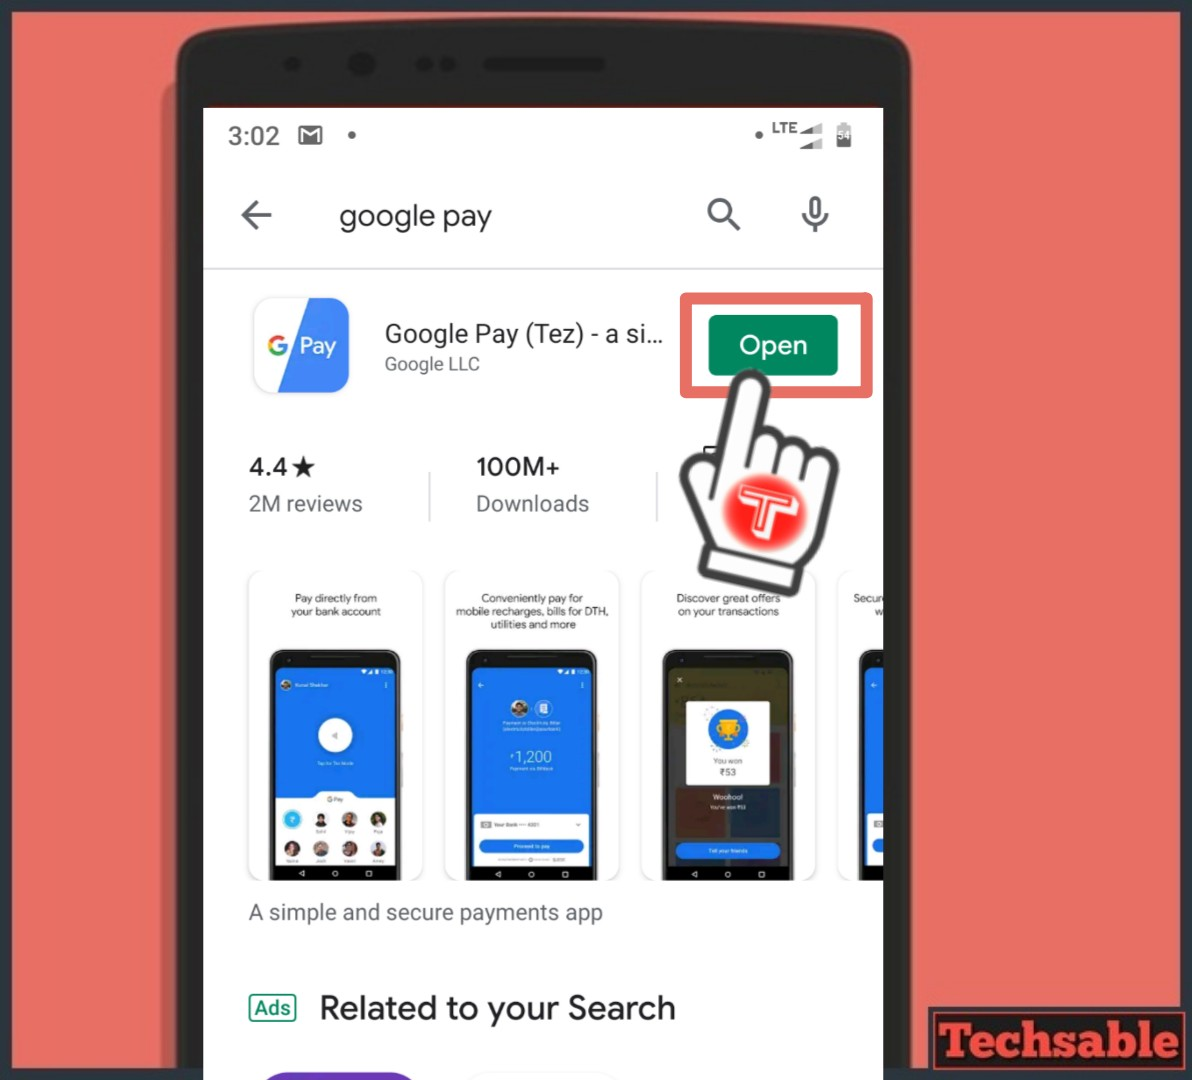 How to Receive Money From Google Pay